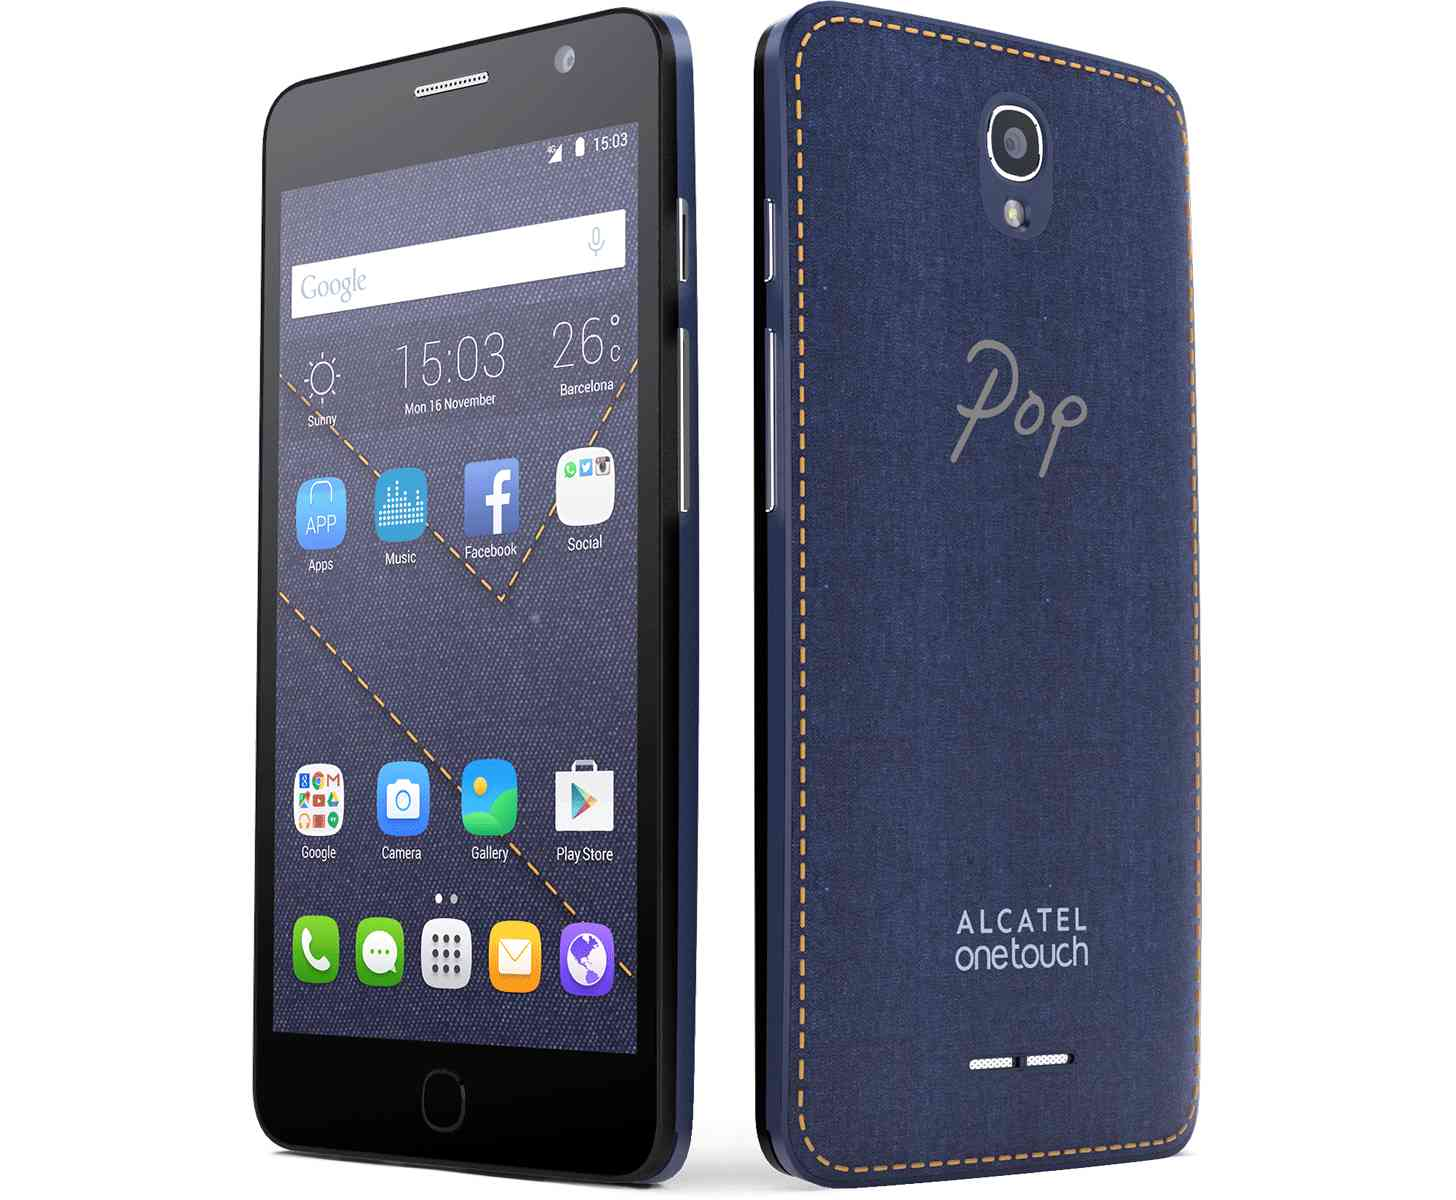 alcatel onetouch pop star android mobile phone price and. Black Bedroom Furniture Sets. Home Design Ideas